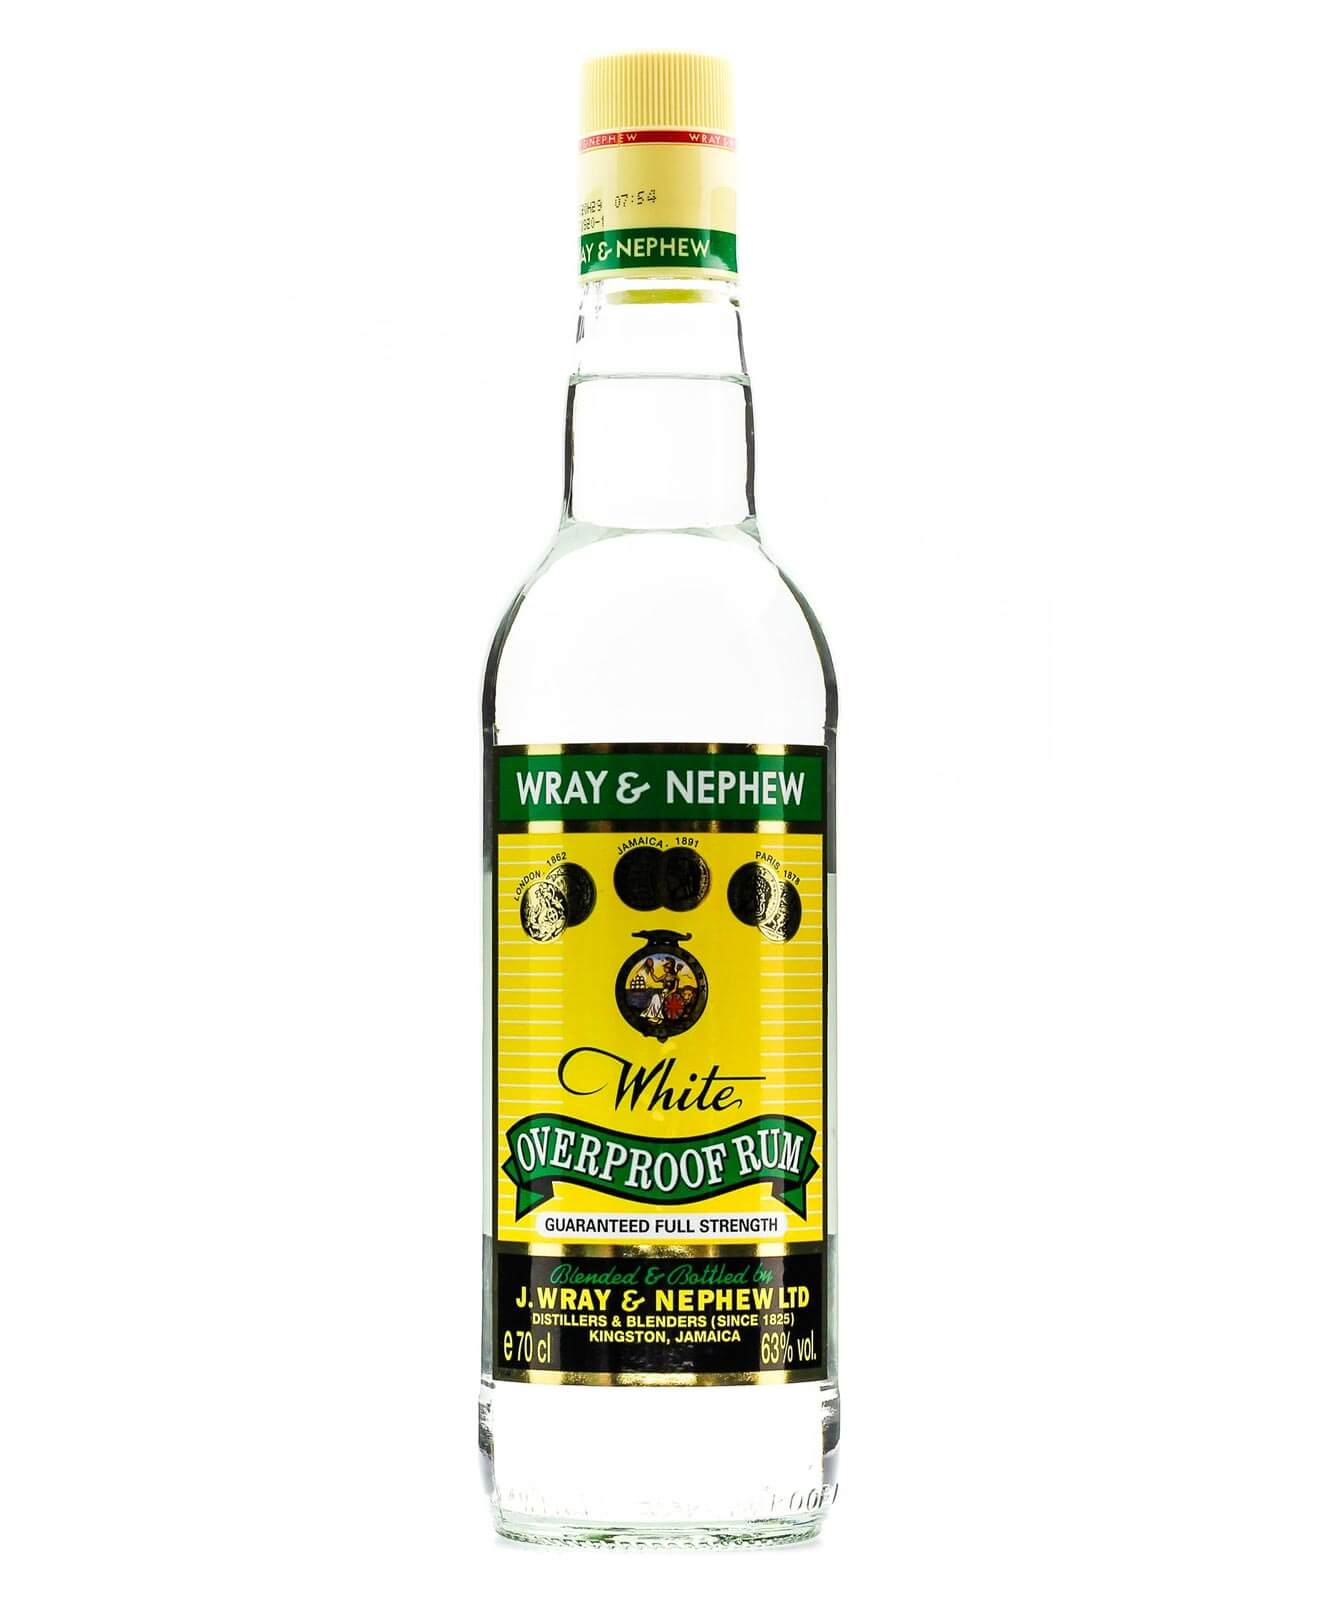 Wray & Nephew White Overproof Rum, bottle on white